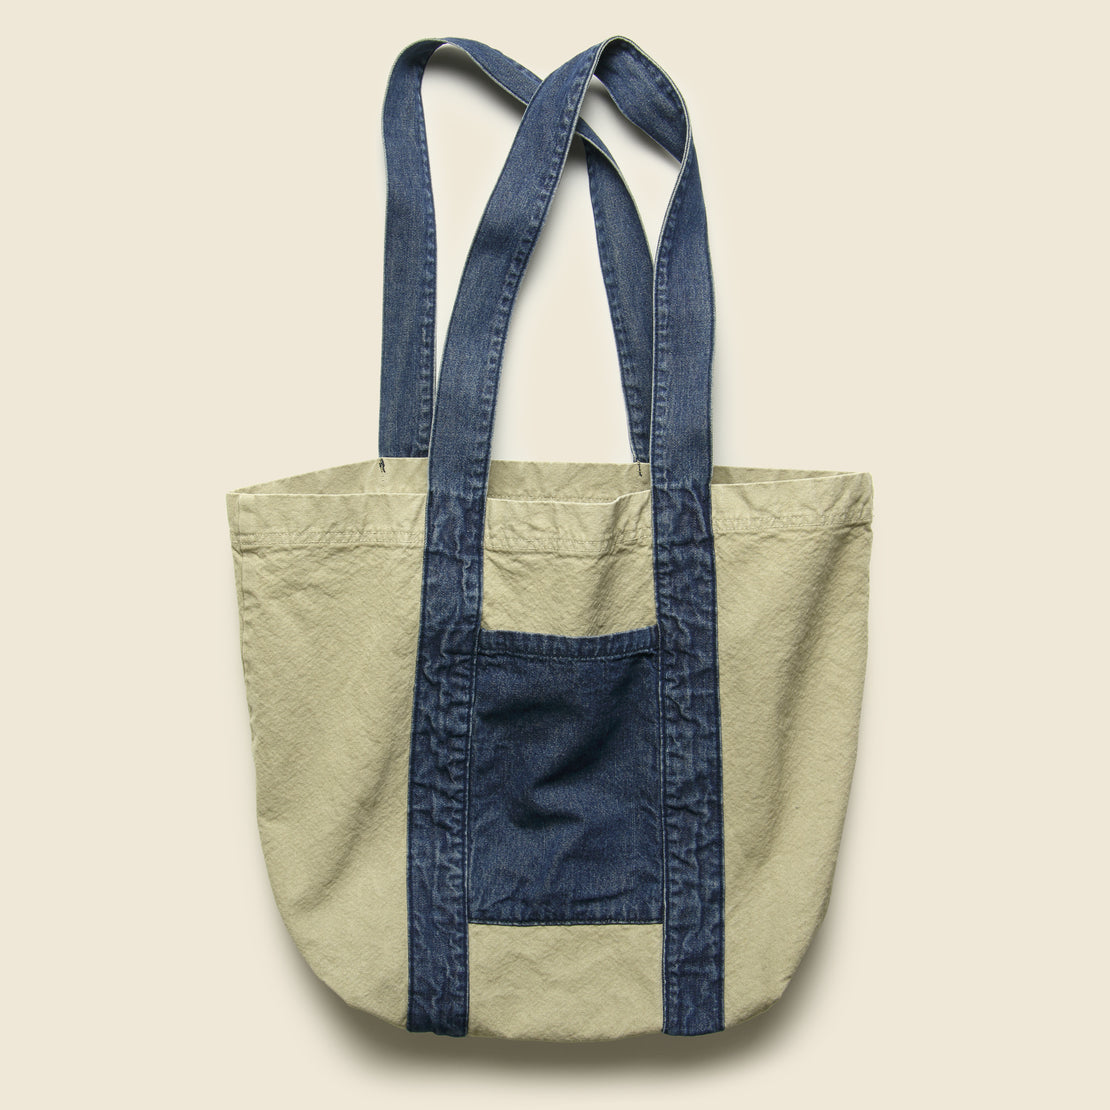 Save Khaki Canvas/Denim Tote Bag - Khaki